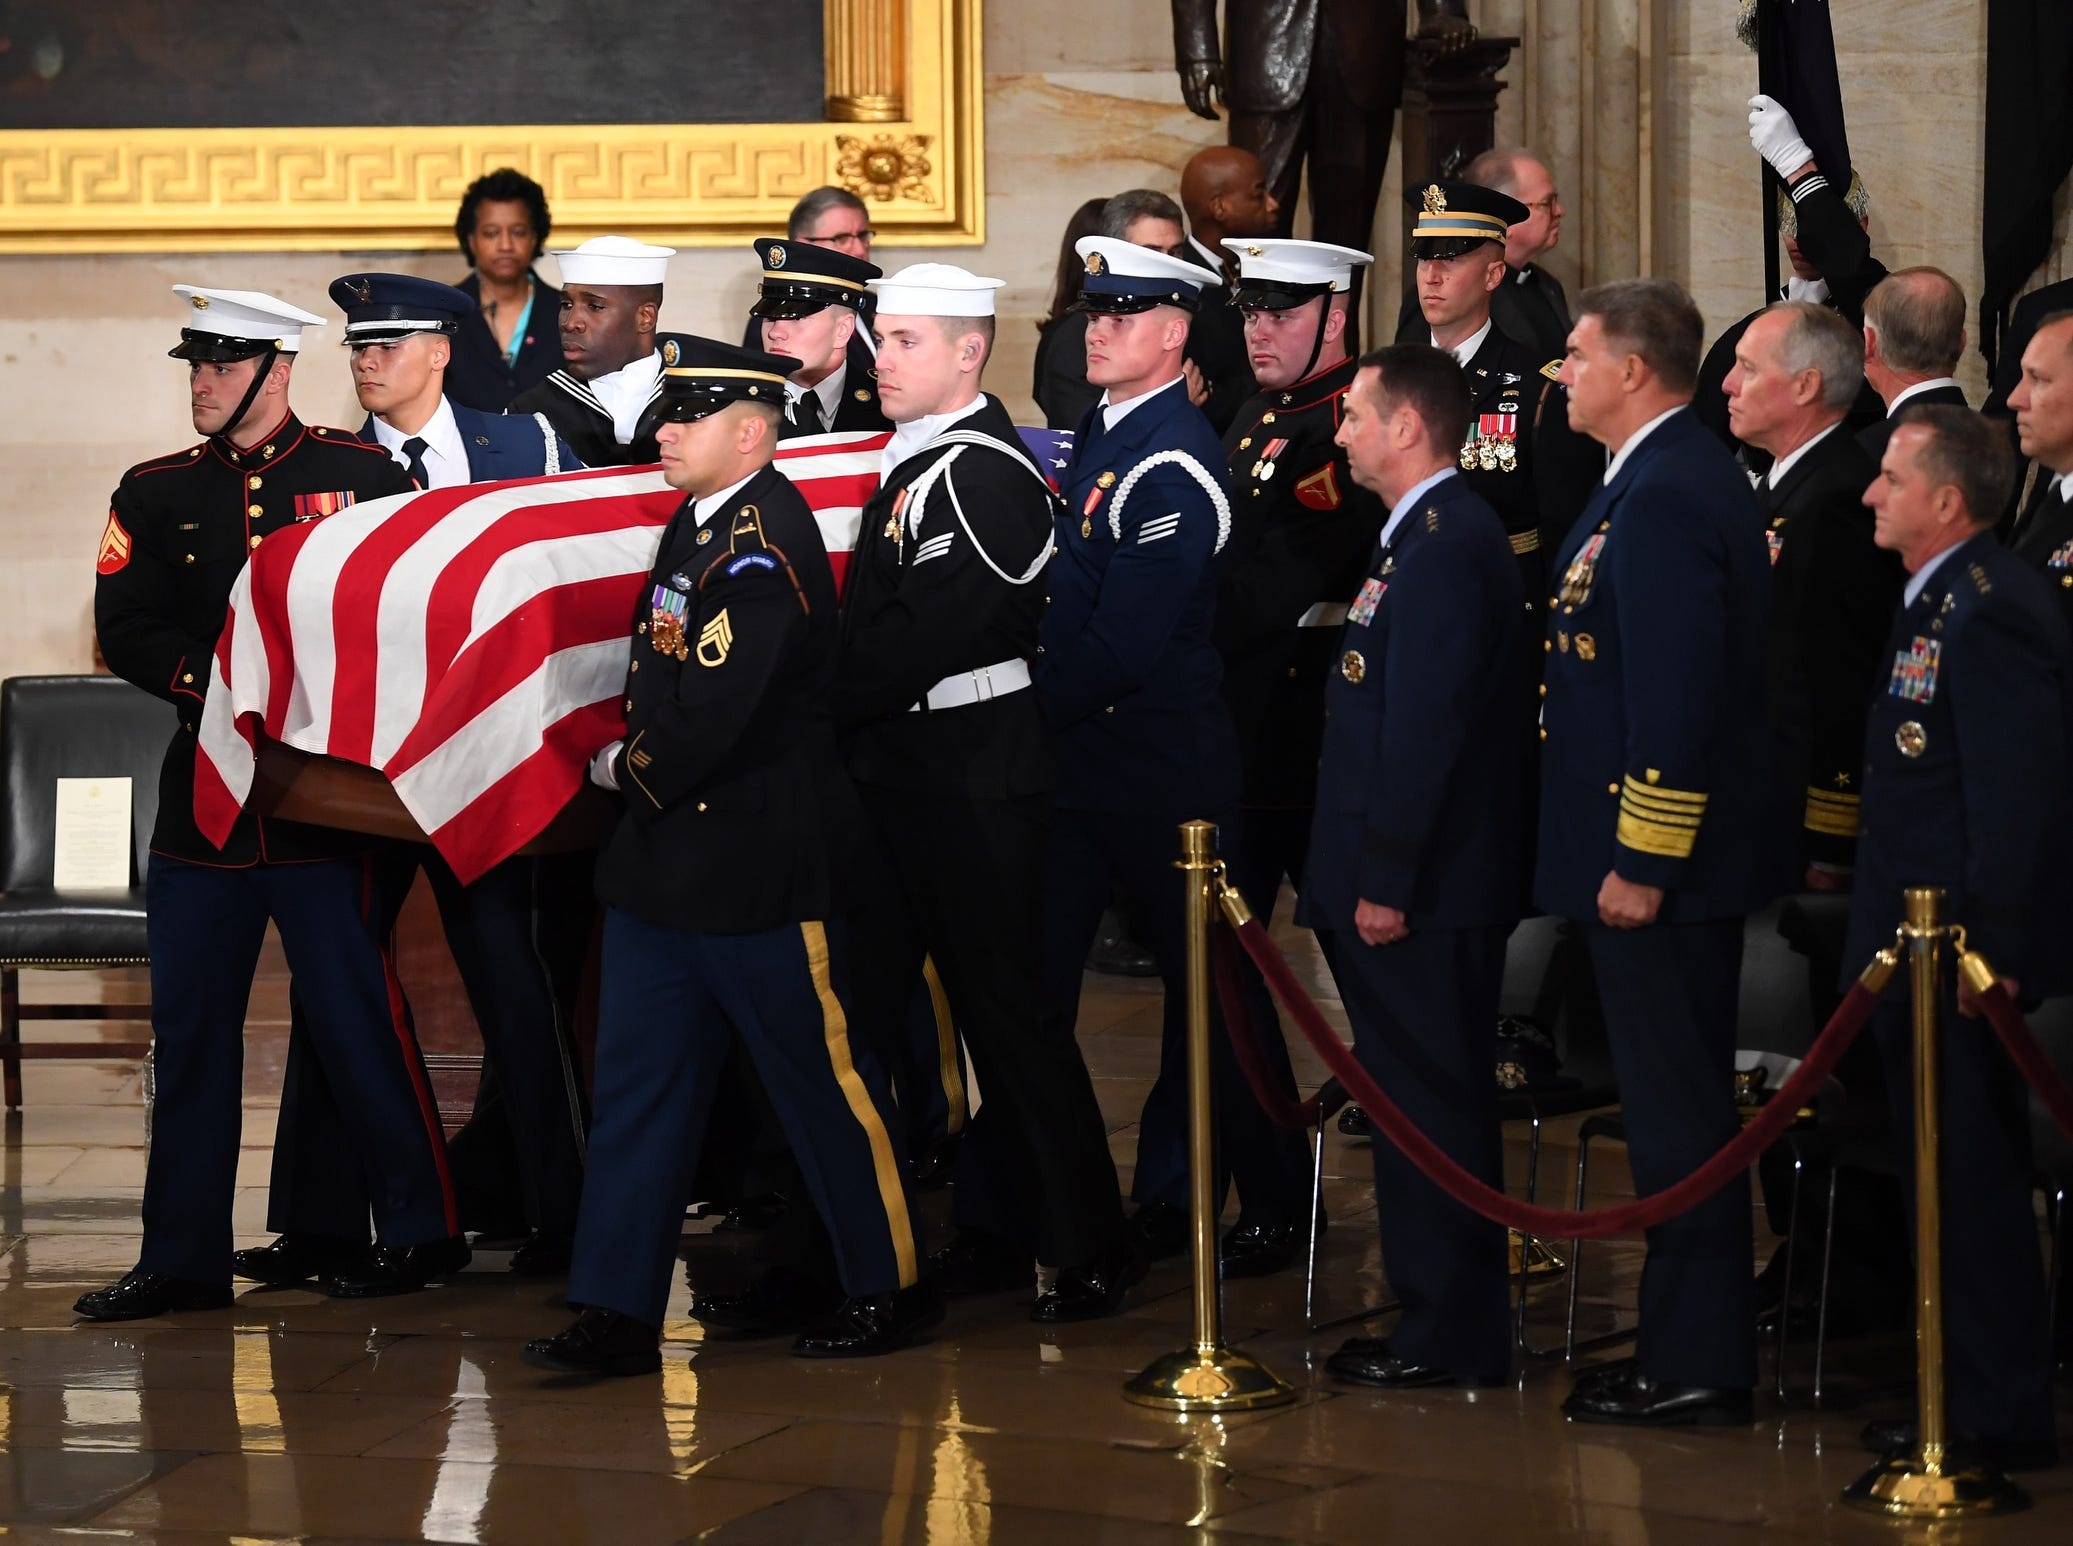 The late president will lie in state until 7 a.m. Wednesday, Dec. 5, 2018.